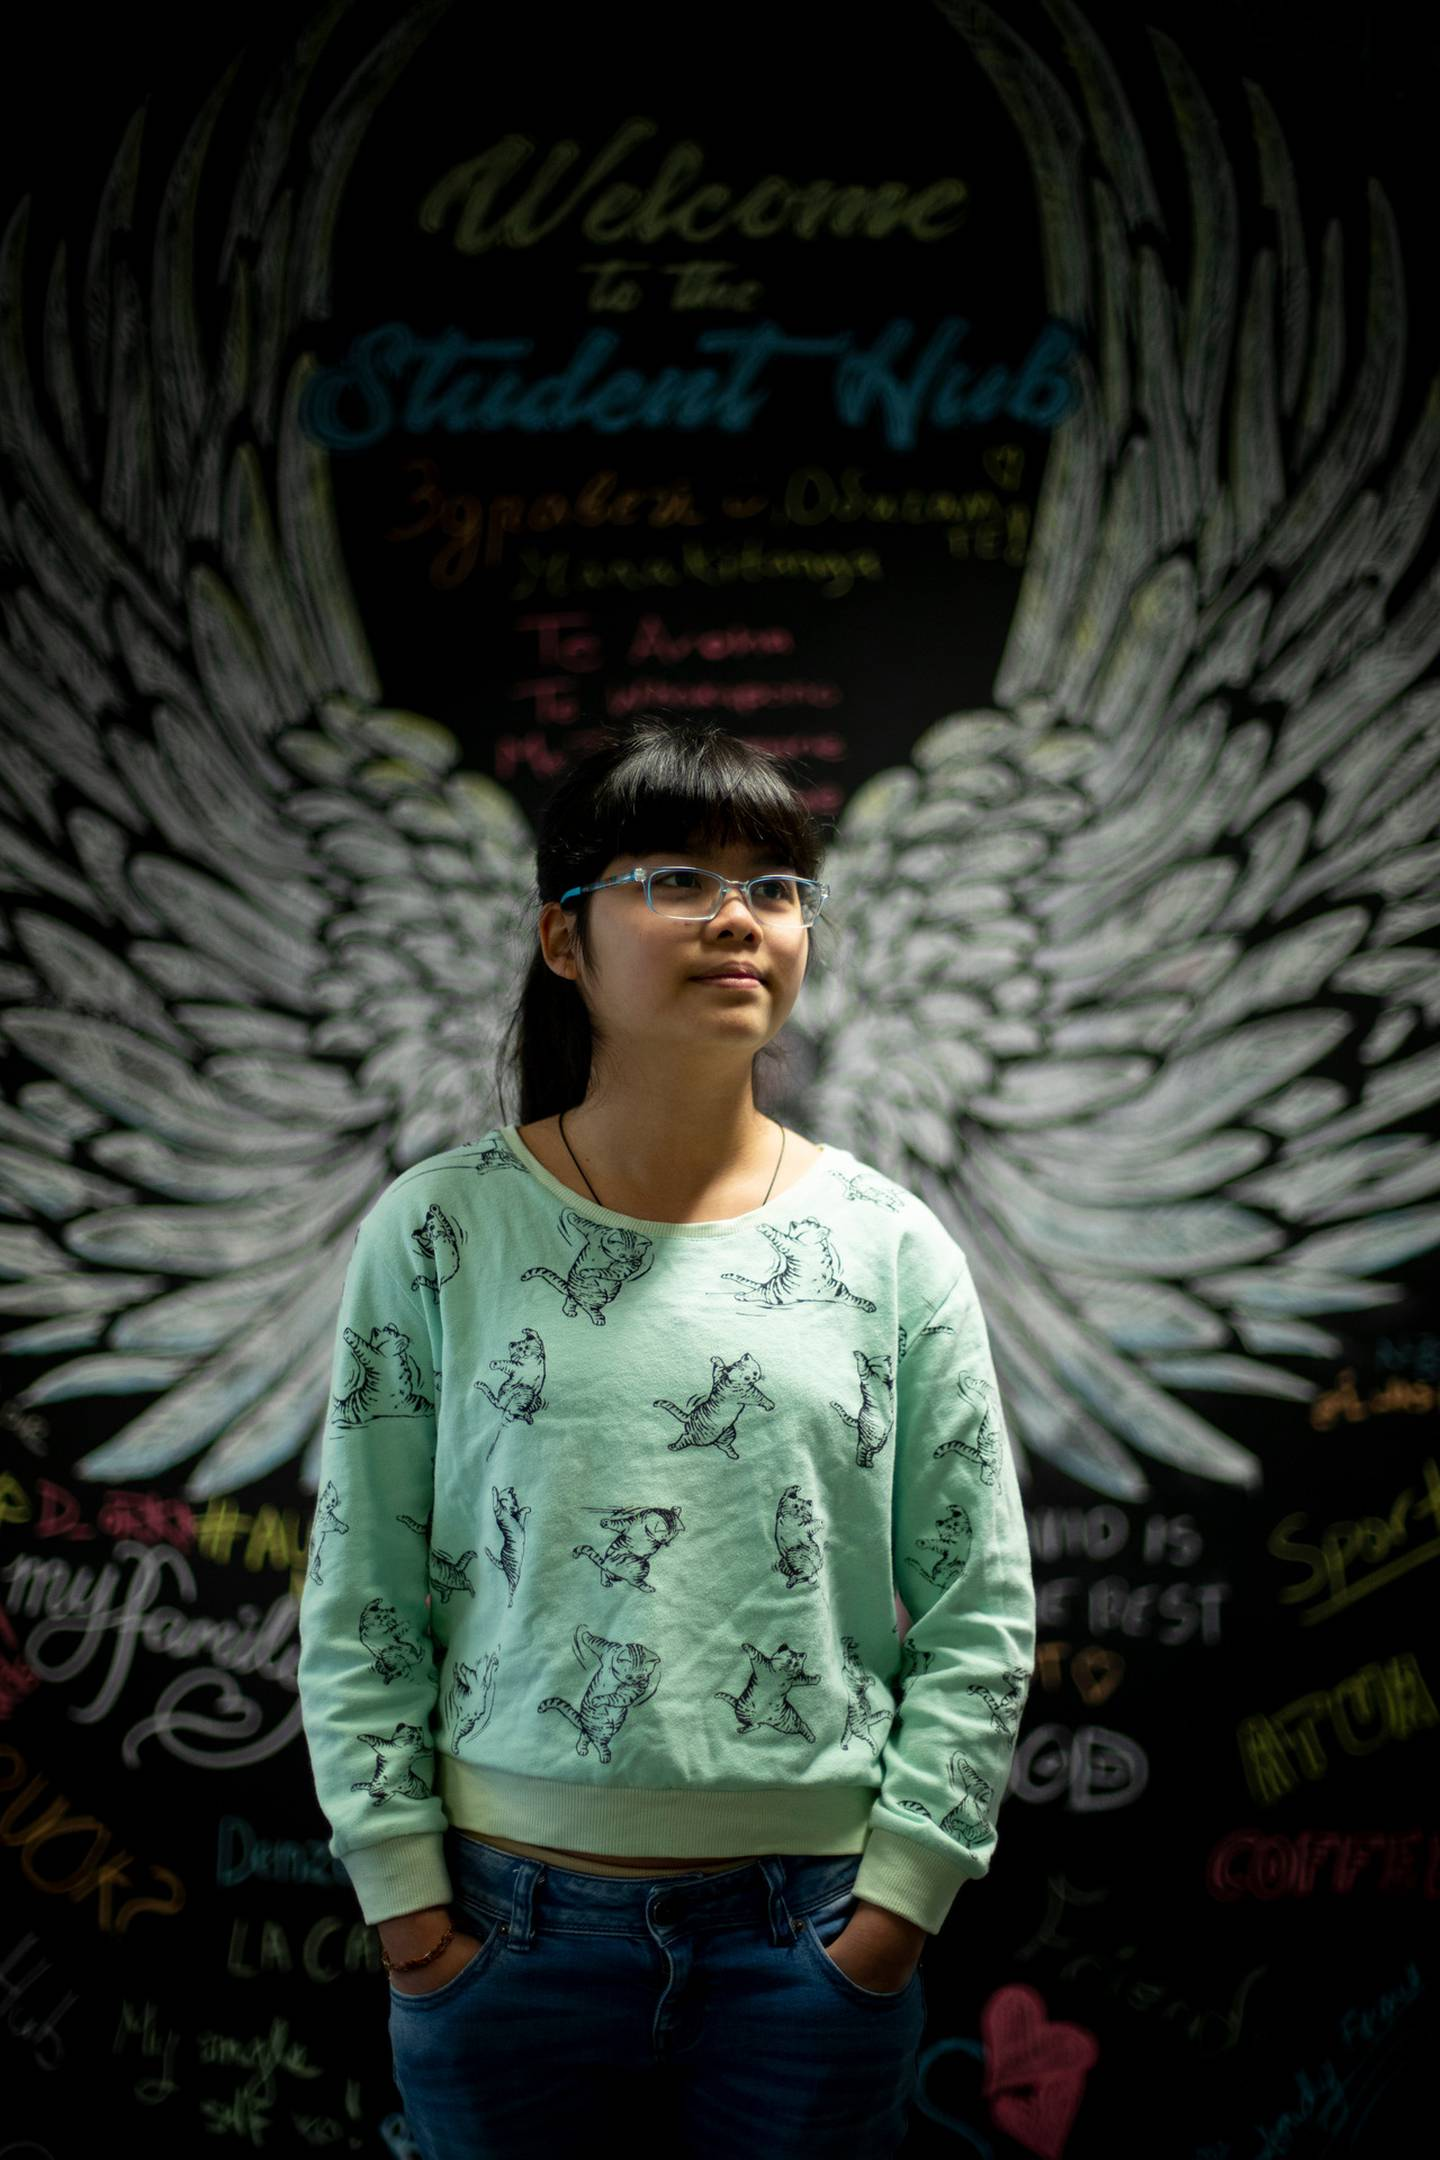 15-year-old Vietnamese prodigy might have to leave New Zealand after graduation from university